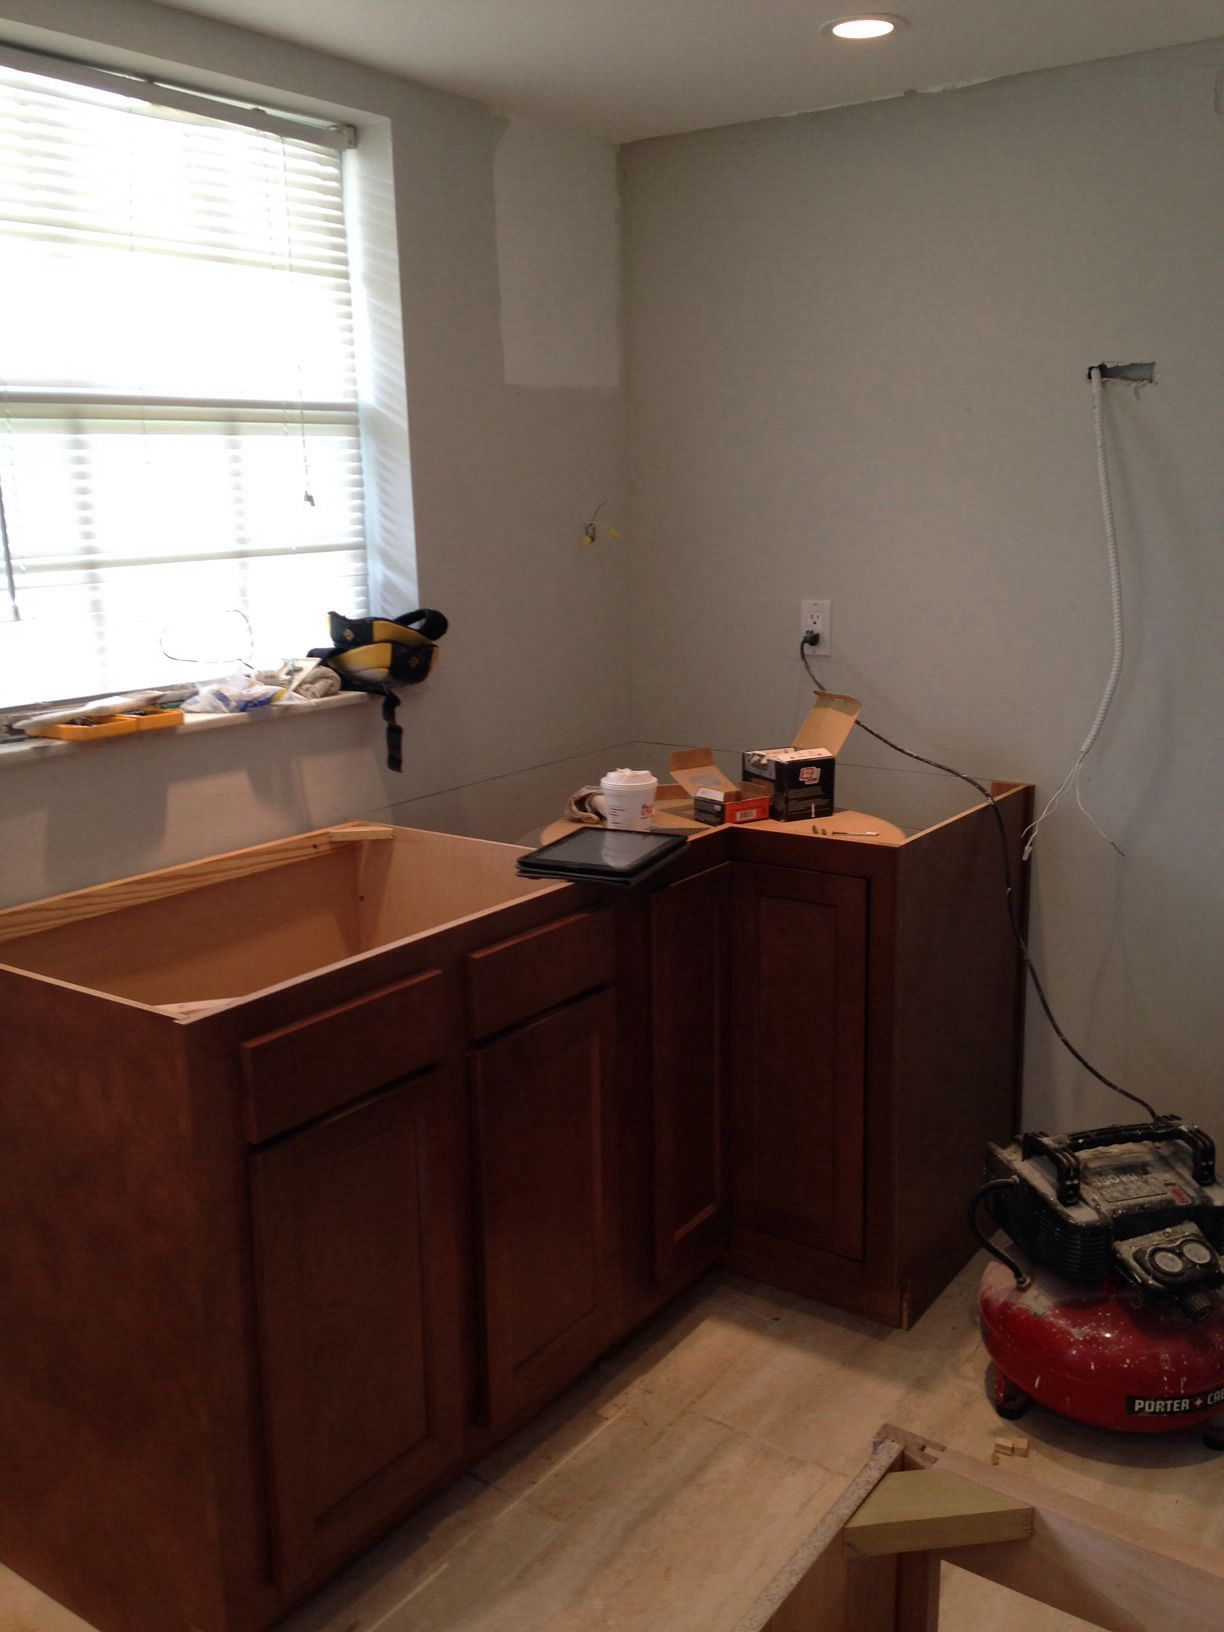 Glenwood Beech Cabinets By Kitchen Kompact Going In Cucine